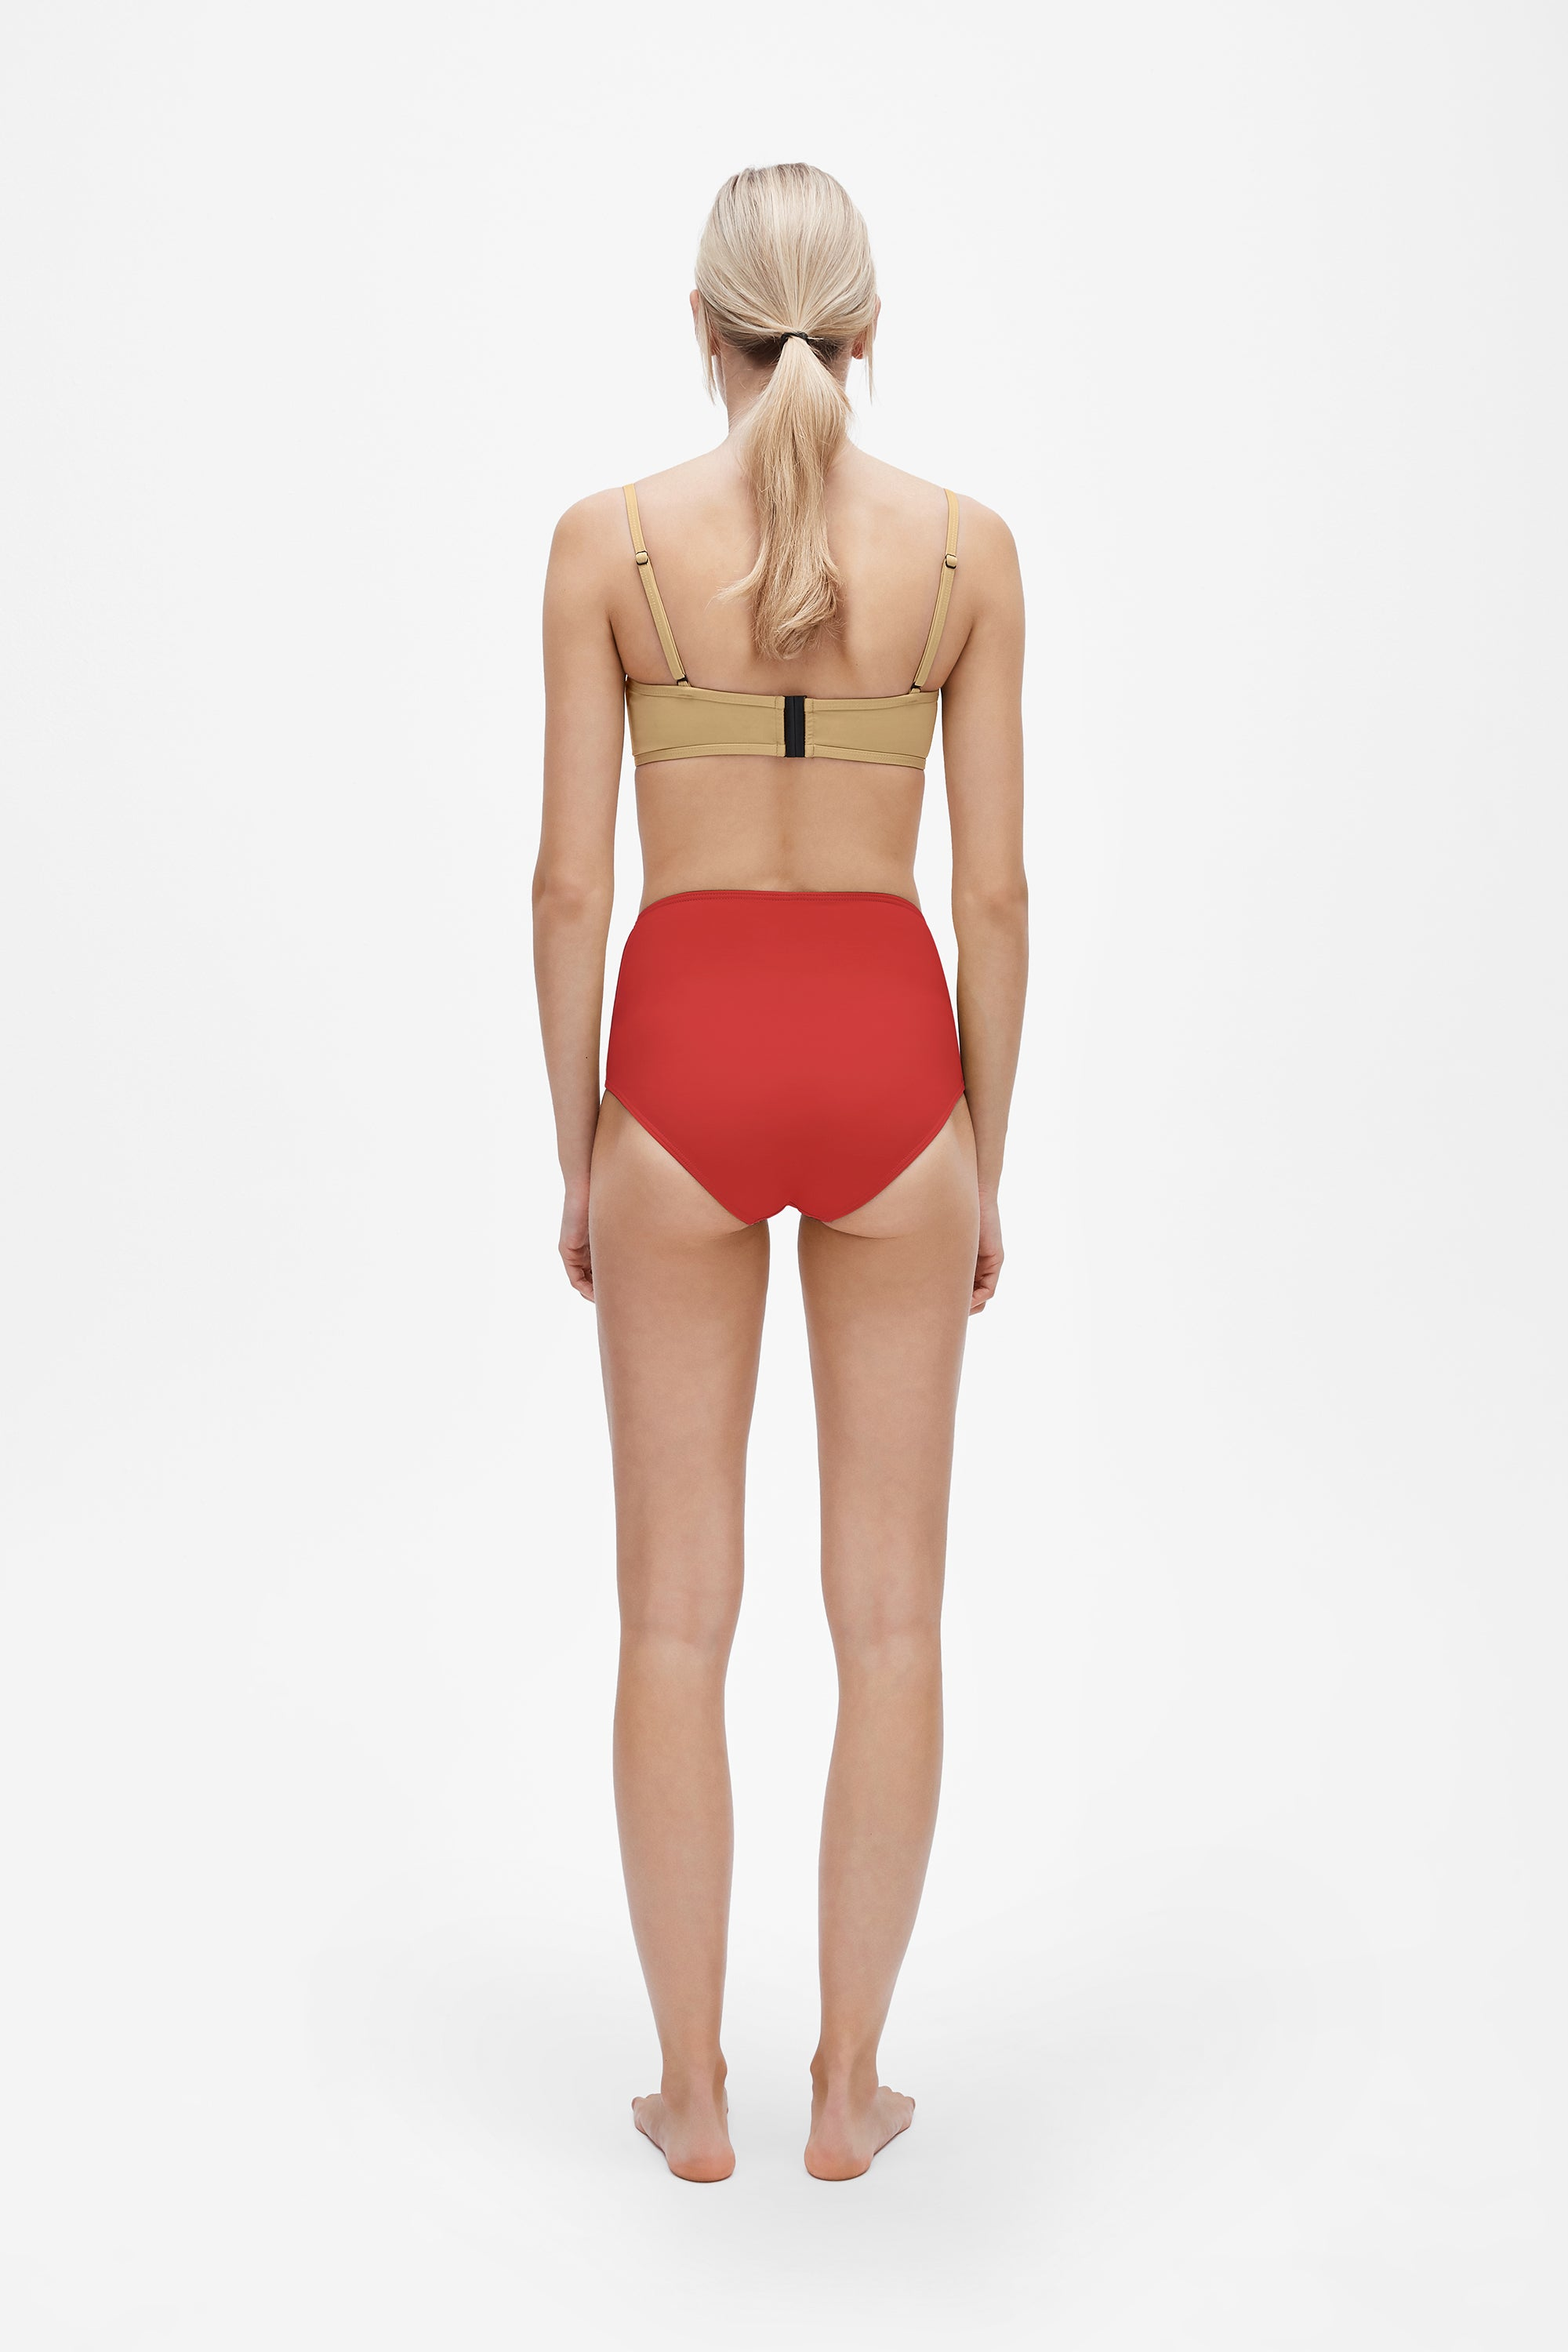 Lily top in Light straw - Brief in Lava red